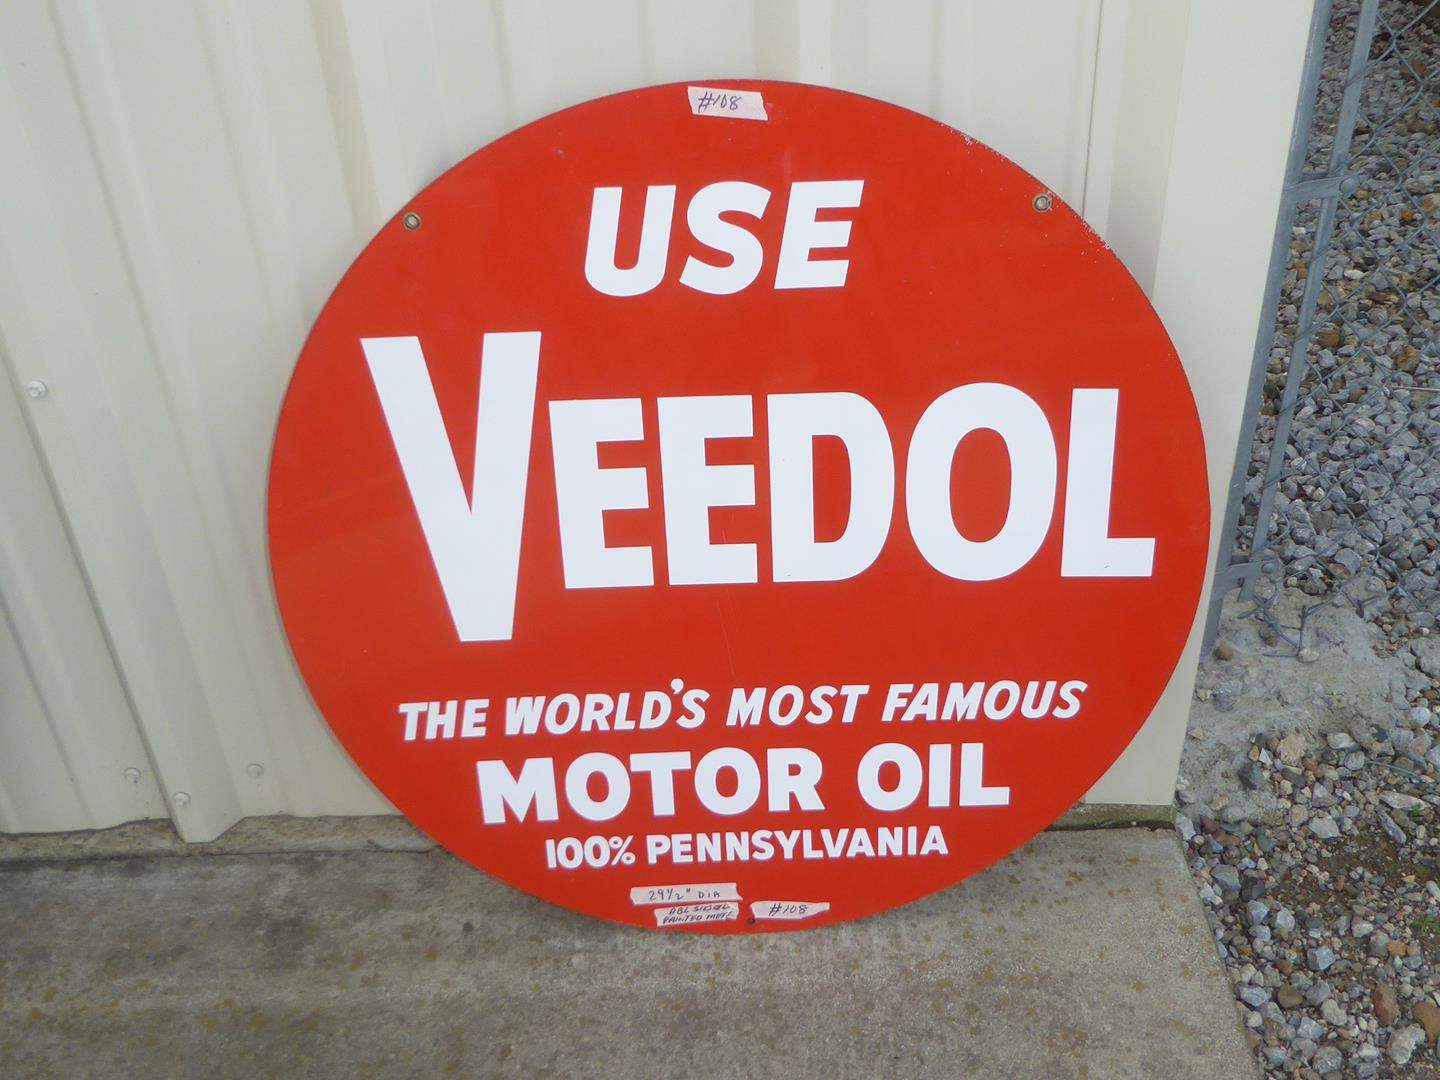 """Lot # 108 - Large Round Double Sided Painted Metal """"Use Veedol"""" Motor Oil Advertising Sign (main image)"""